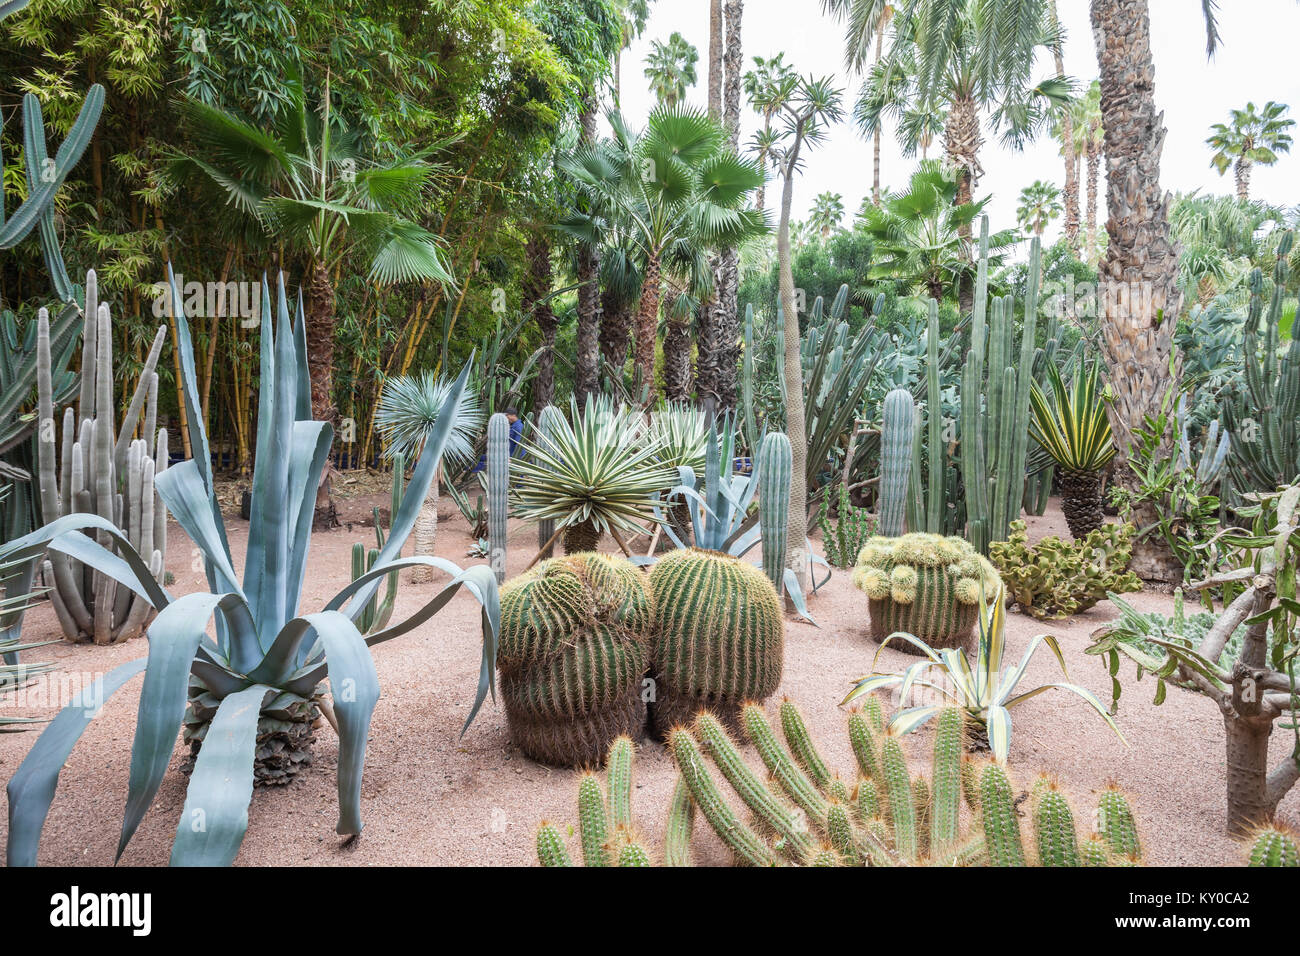 MARRAKECH, MOROCCO - FEBRUARY 22, 2016: The Majorelle Garden is a botanical garden and artist's landscape garden Stock Photo